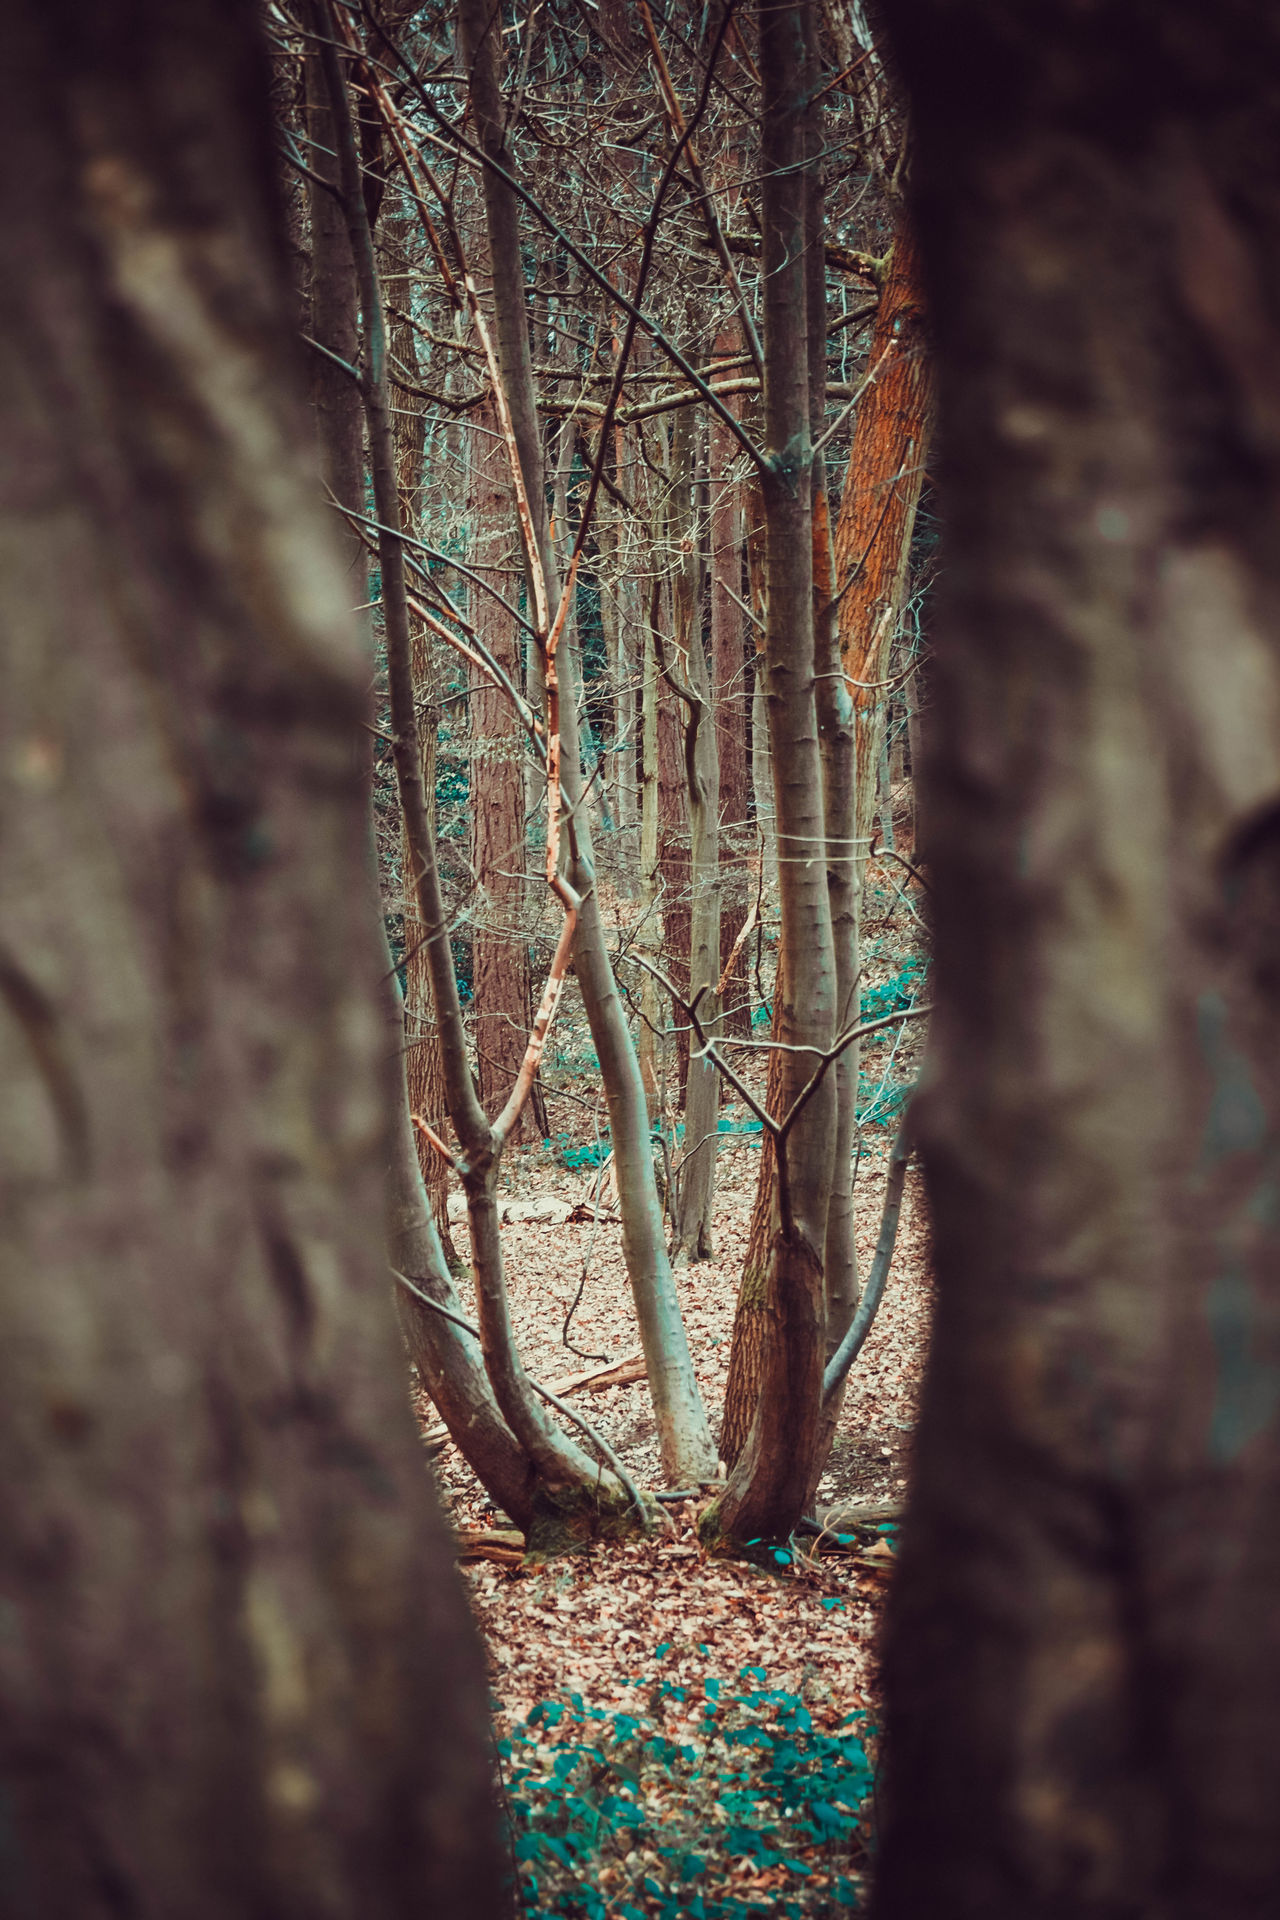 Beauty In Nature Branch Close-up Day Forest Growth Looking Through The Trees Lots Of Leaves Nature No People Outdoors Plant Tranquility Tree Tree Trunk Trees Vibrant Color Walk In The Forest Walk In The Woods WoodLand